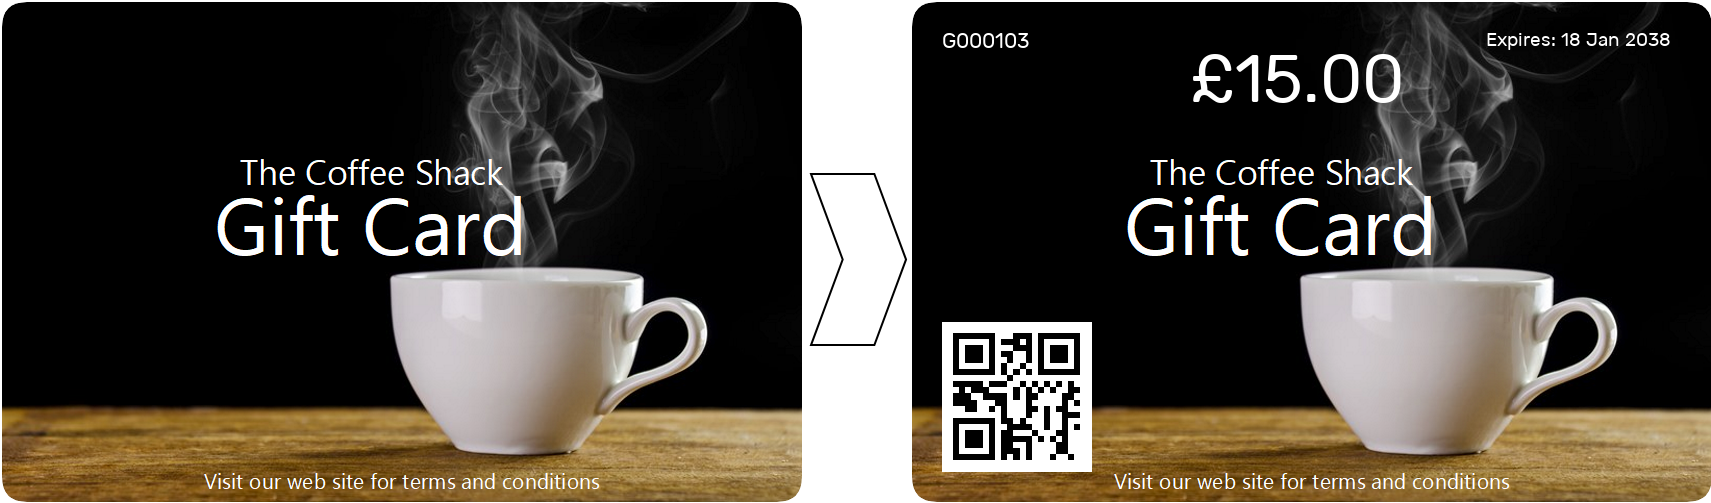 Personalisation of an e-Gift Card